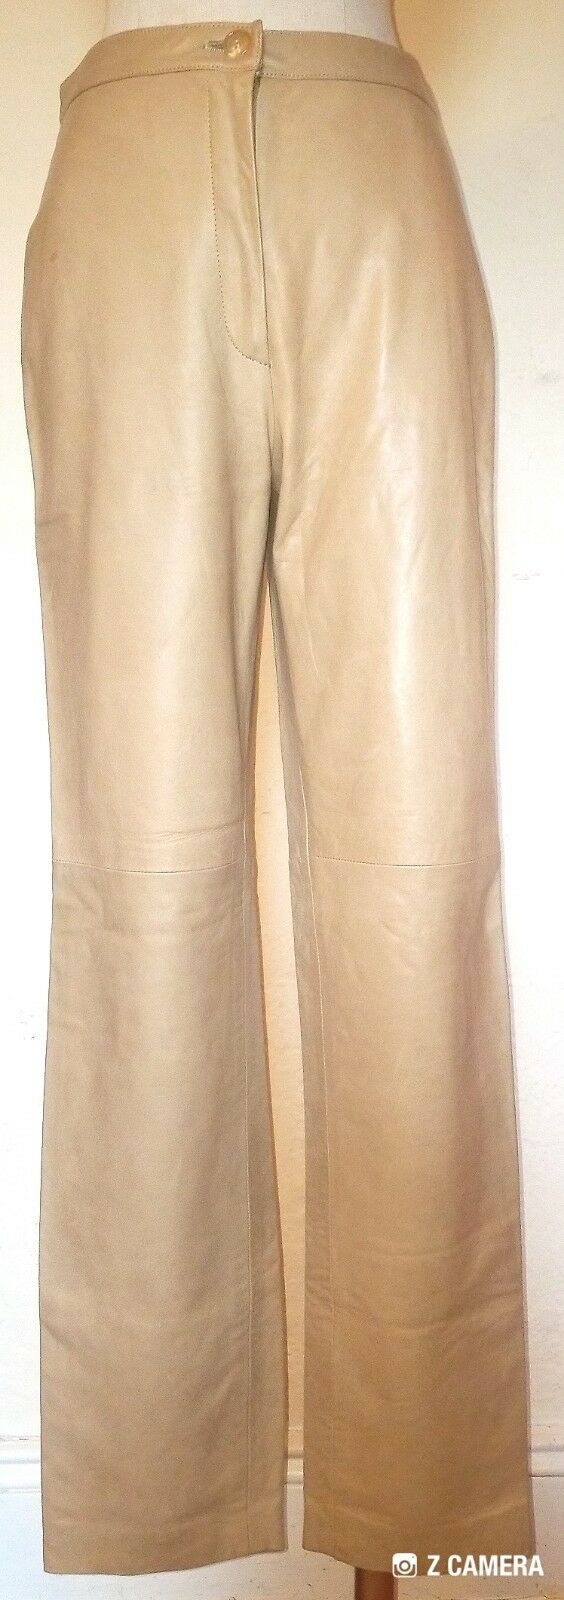 J Crew Tan Butter Soft Leather Pants Size 6 Retails  600 NWT